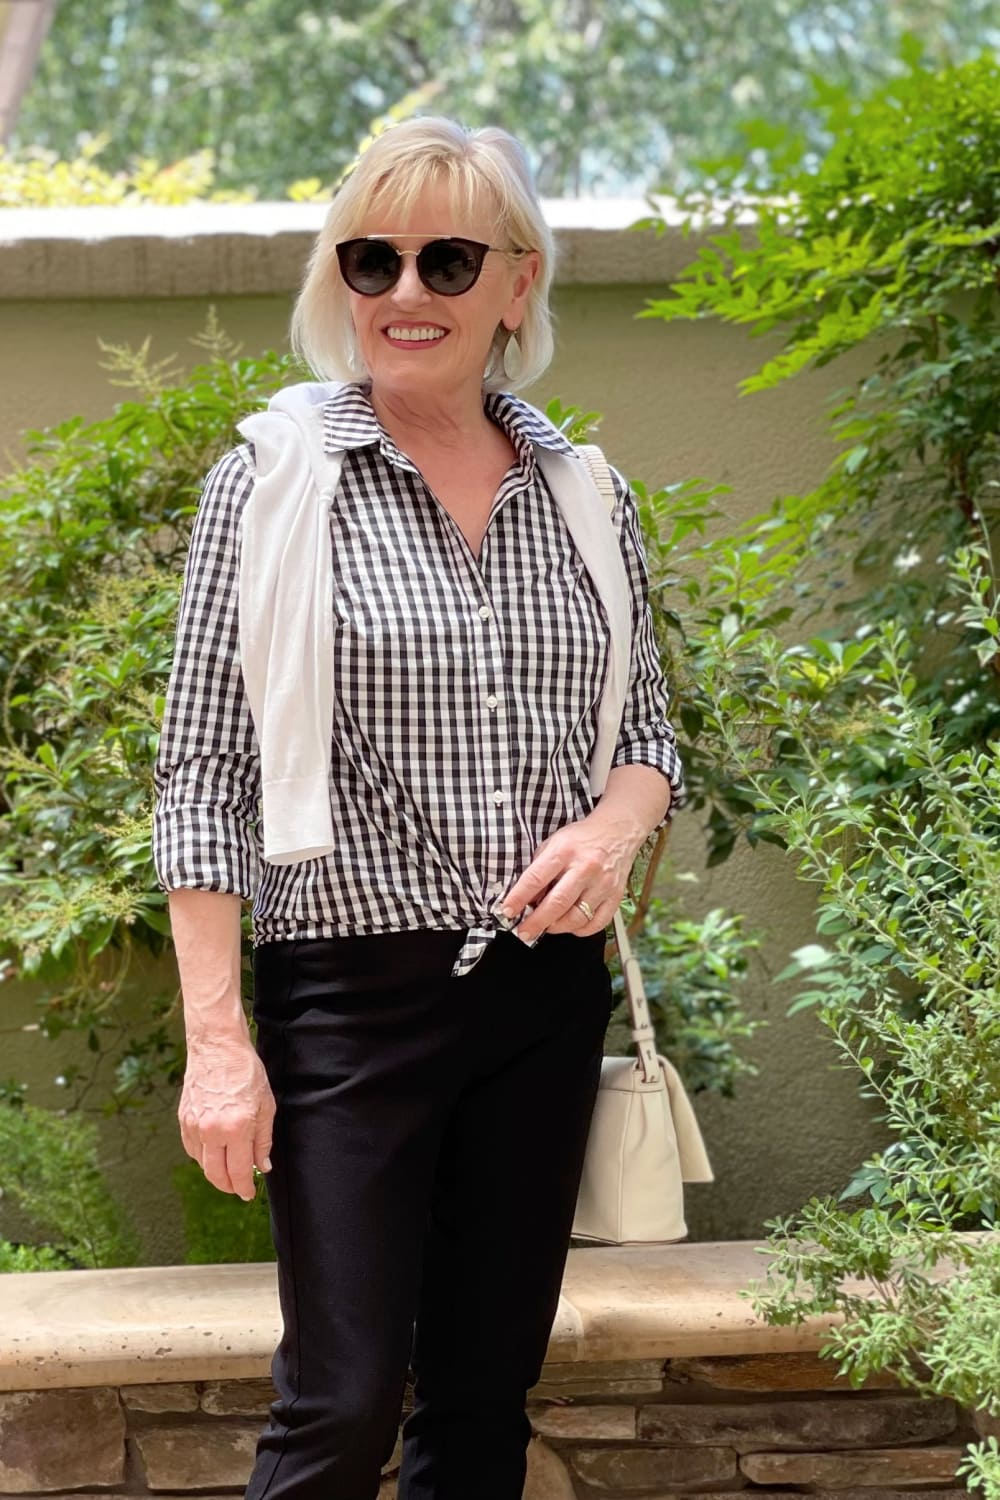 woman wearign black and nwhite gingham shirt and black sunglasses